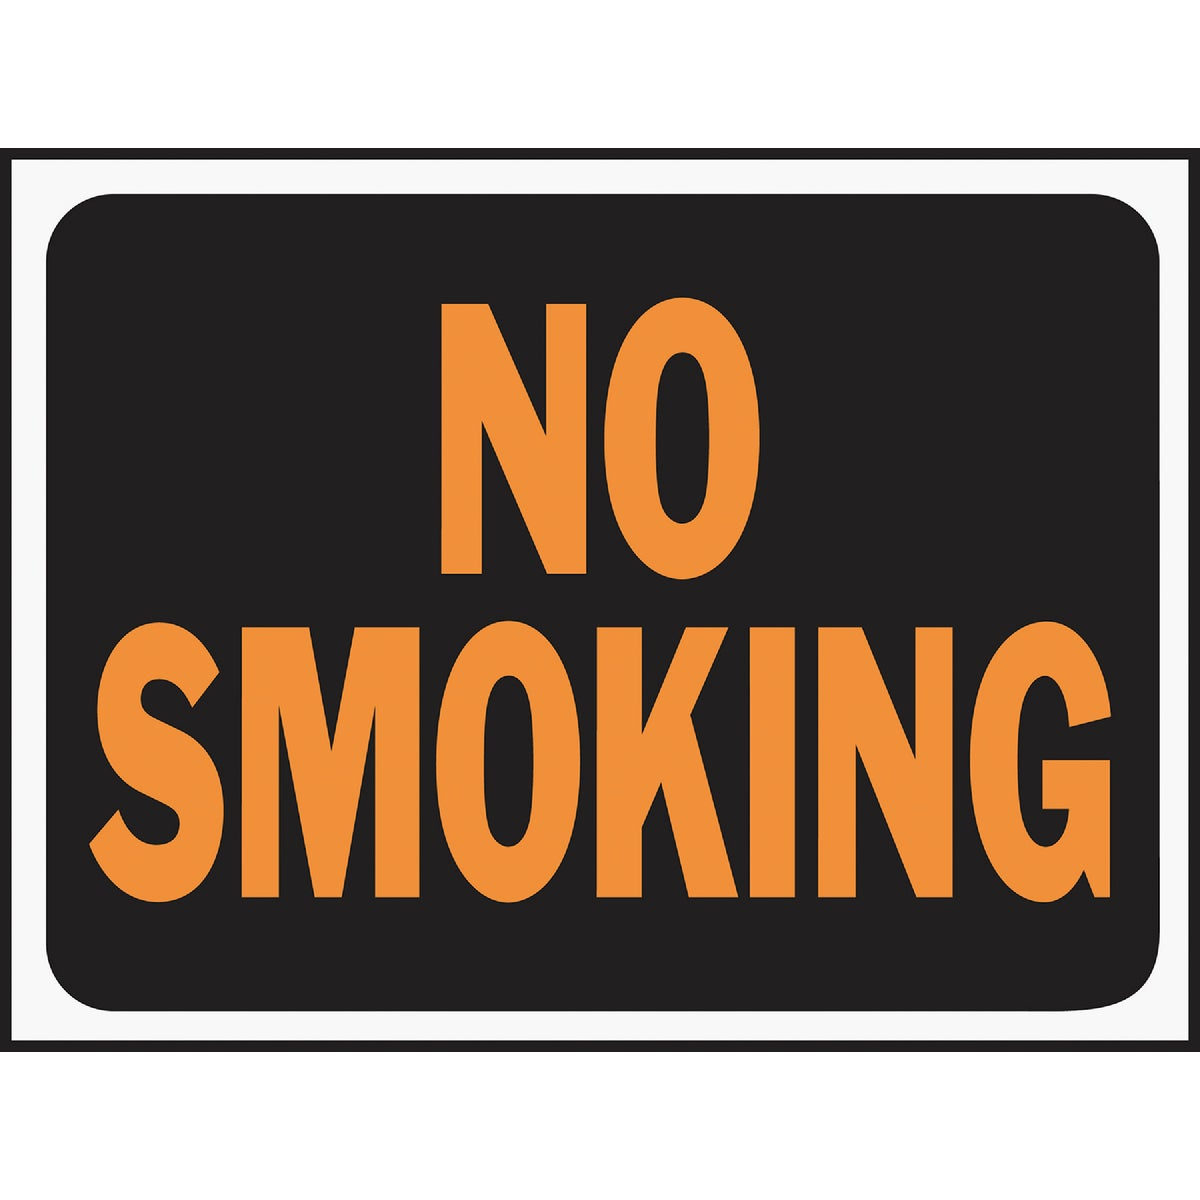 9X12 NO SMOKING SIGN - 3013 by Hy Ko Prods Co